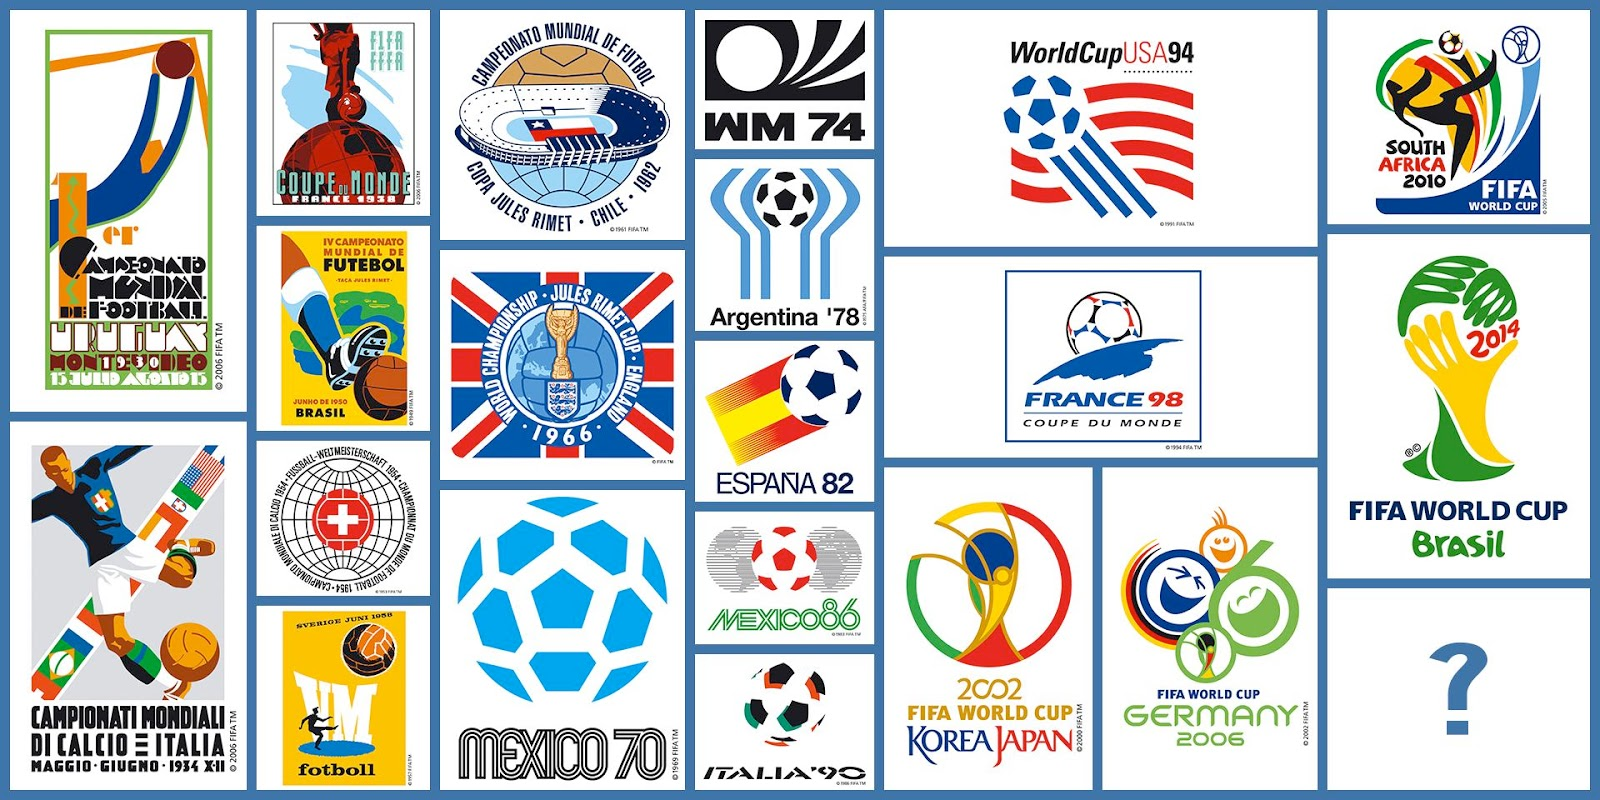 2018 Russia FIFA World Cup Logo Revealed - Footy Headlines